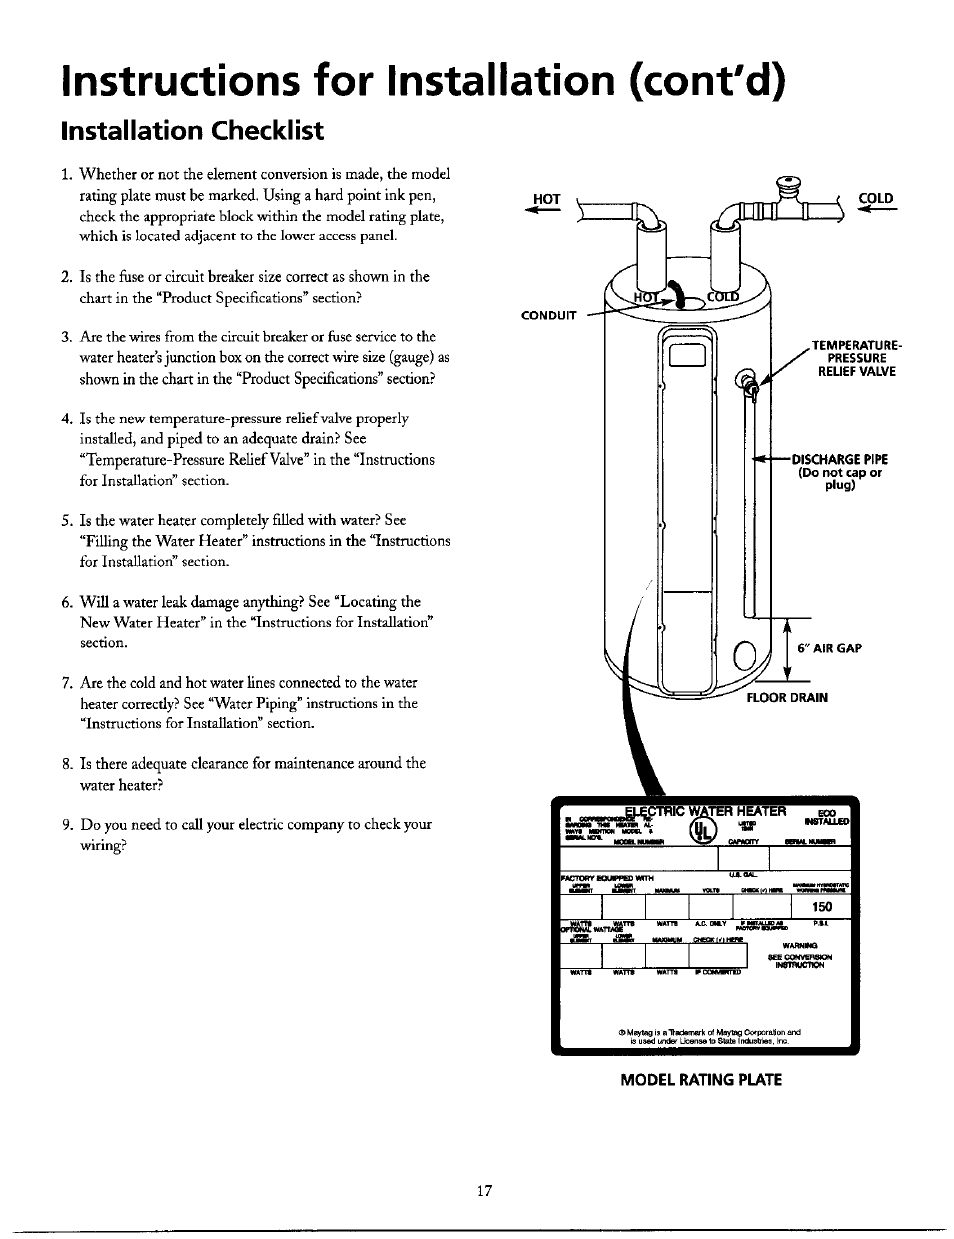 medium resolution of instructions for installation cont d installation checklist maytag he21250s user manual page 17 32